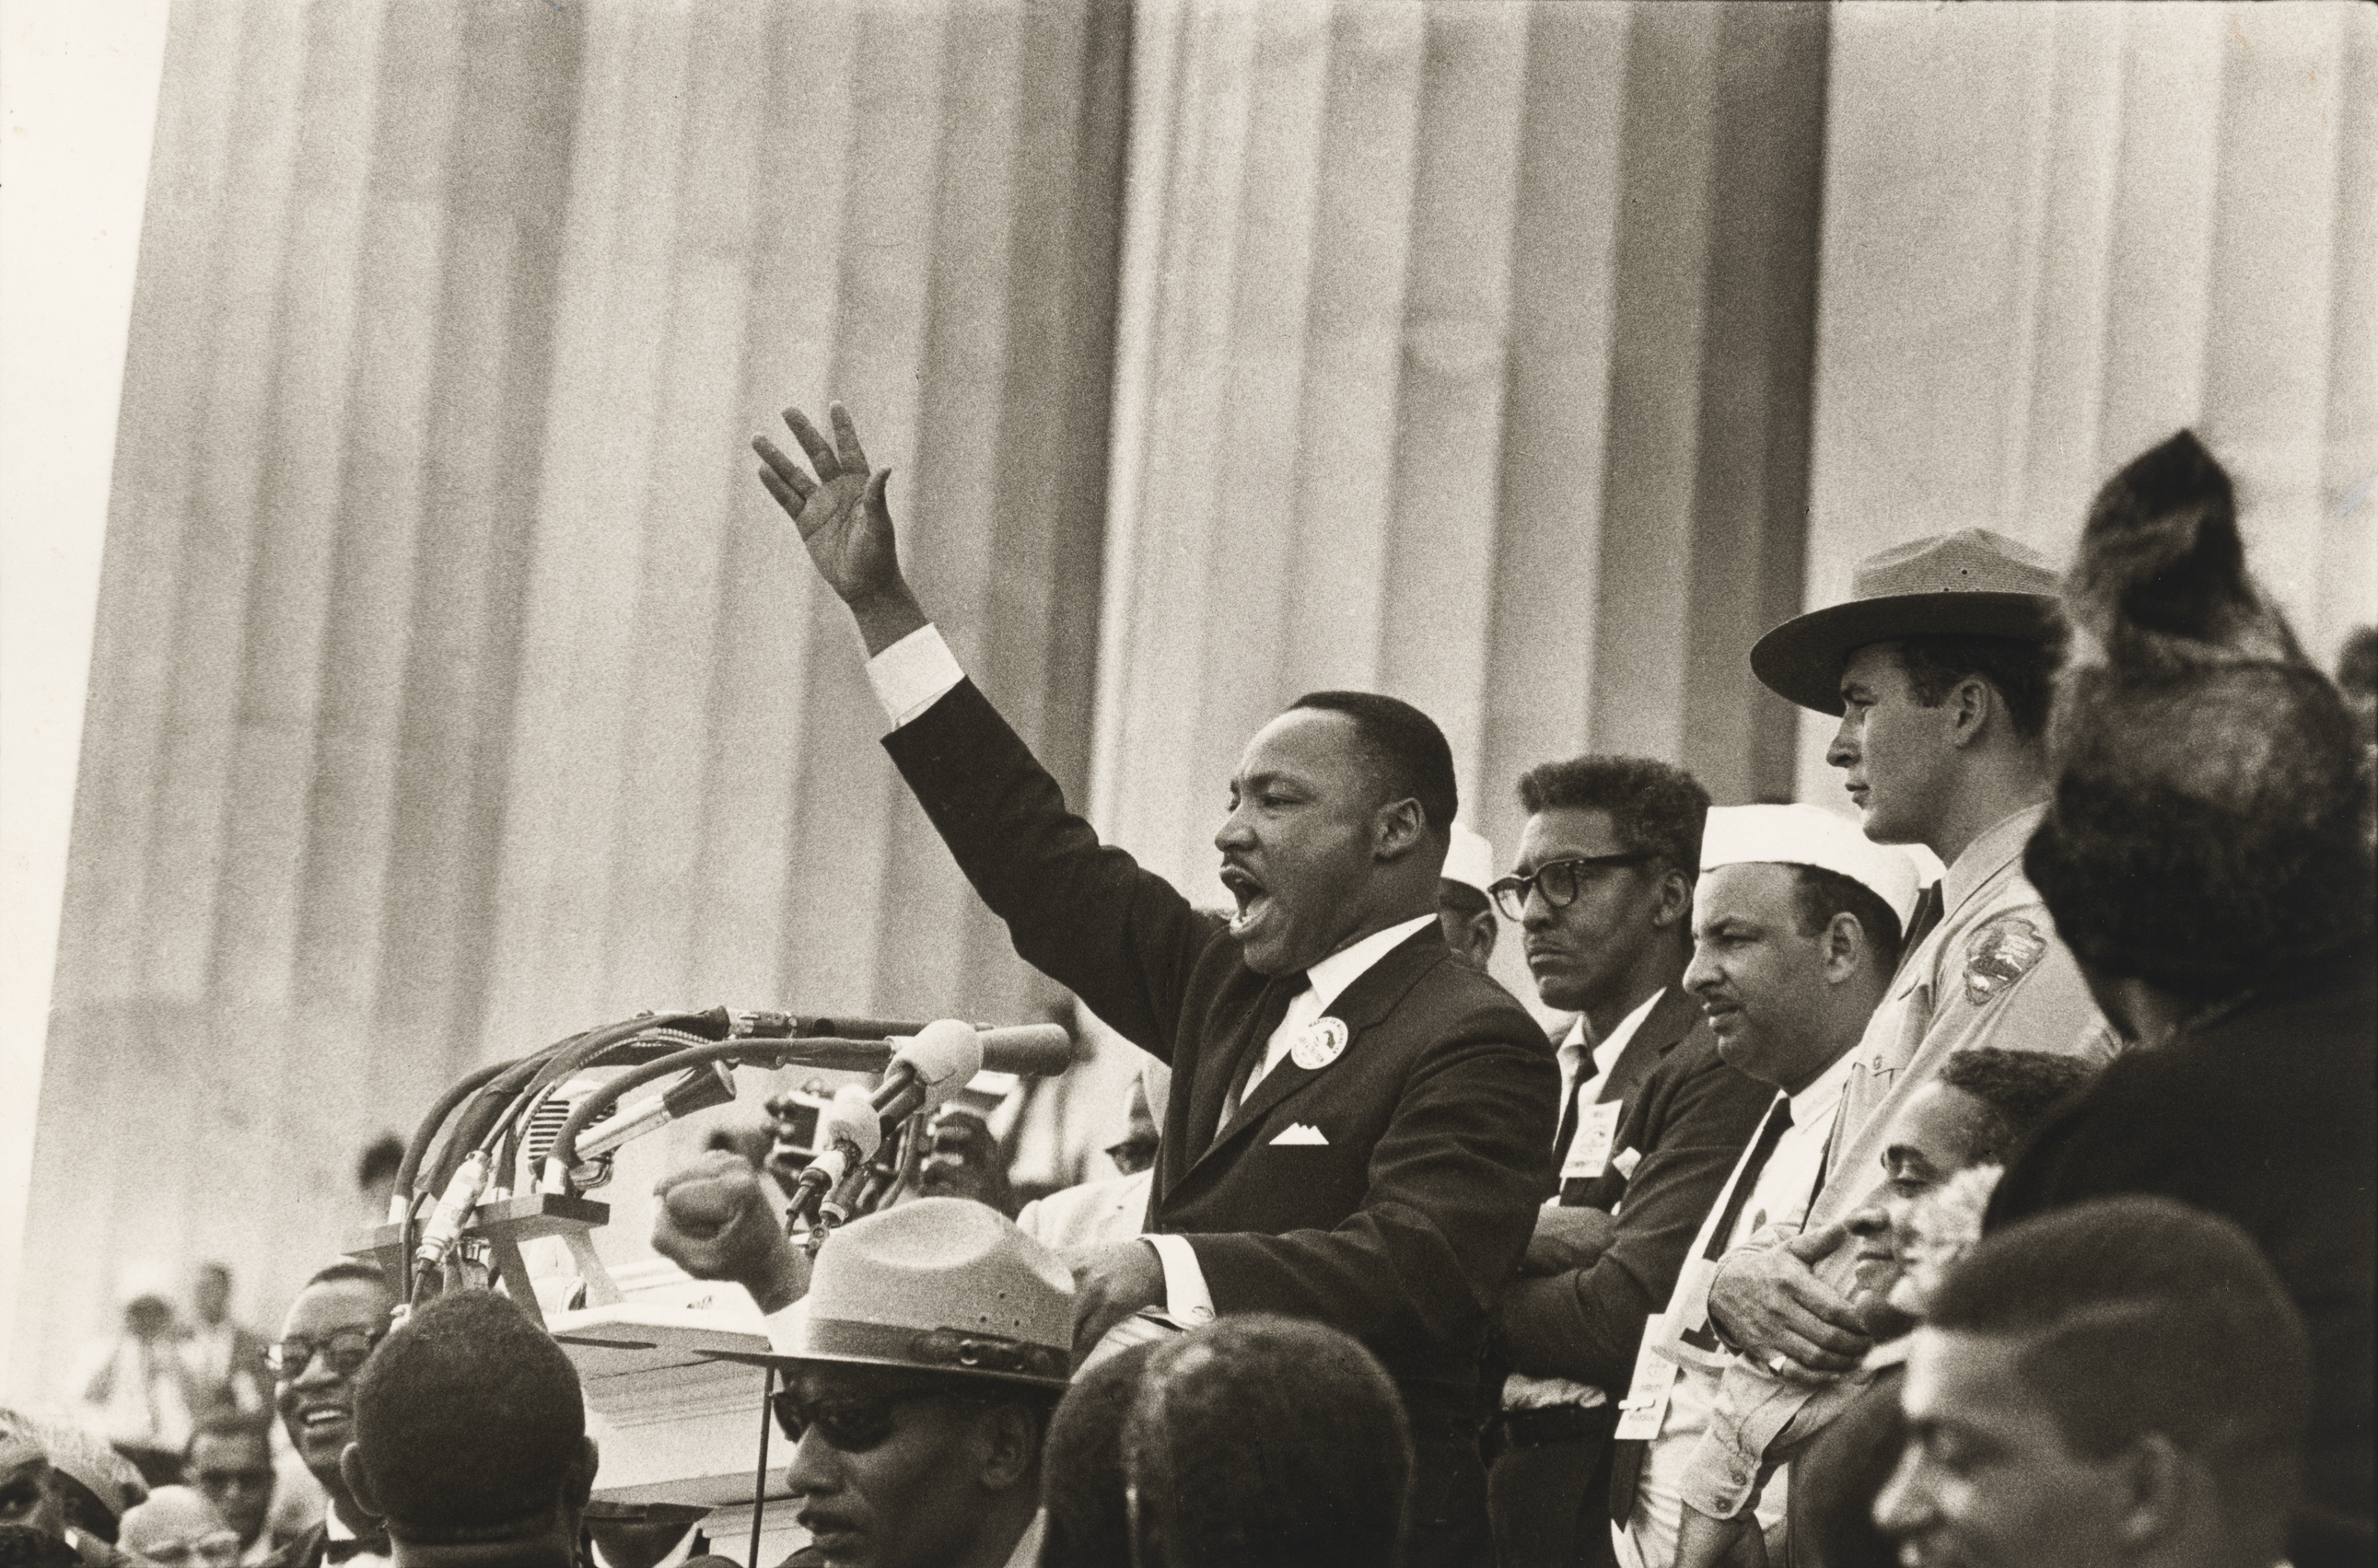 what speech did martin luther king gave